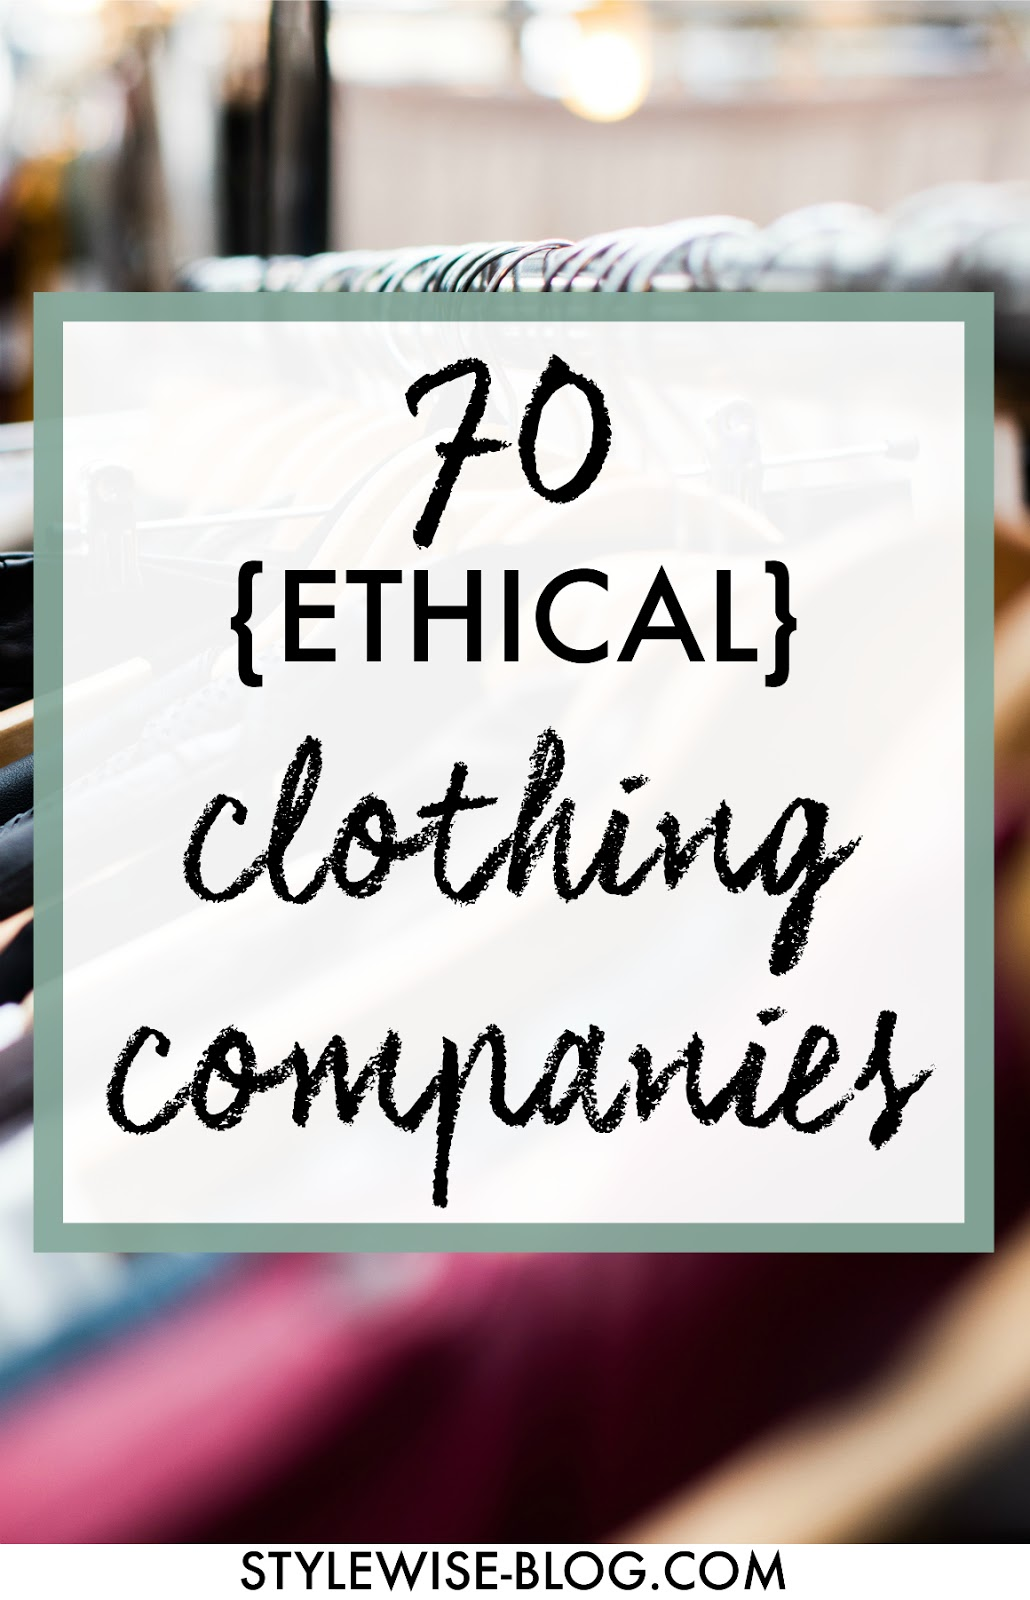 more than 70 ethical and sustainable womens clothing directory